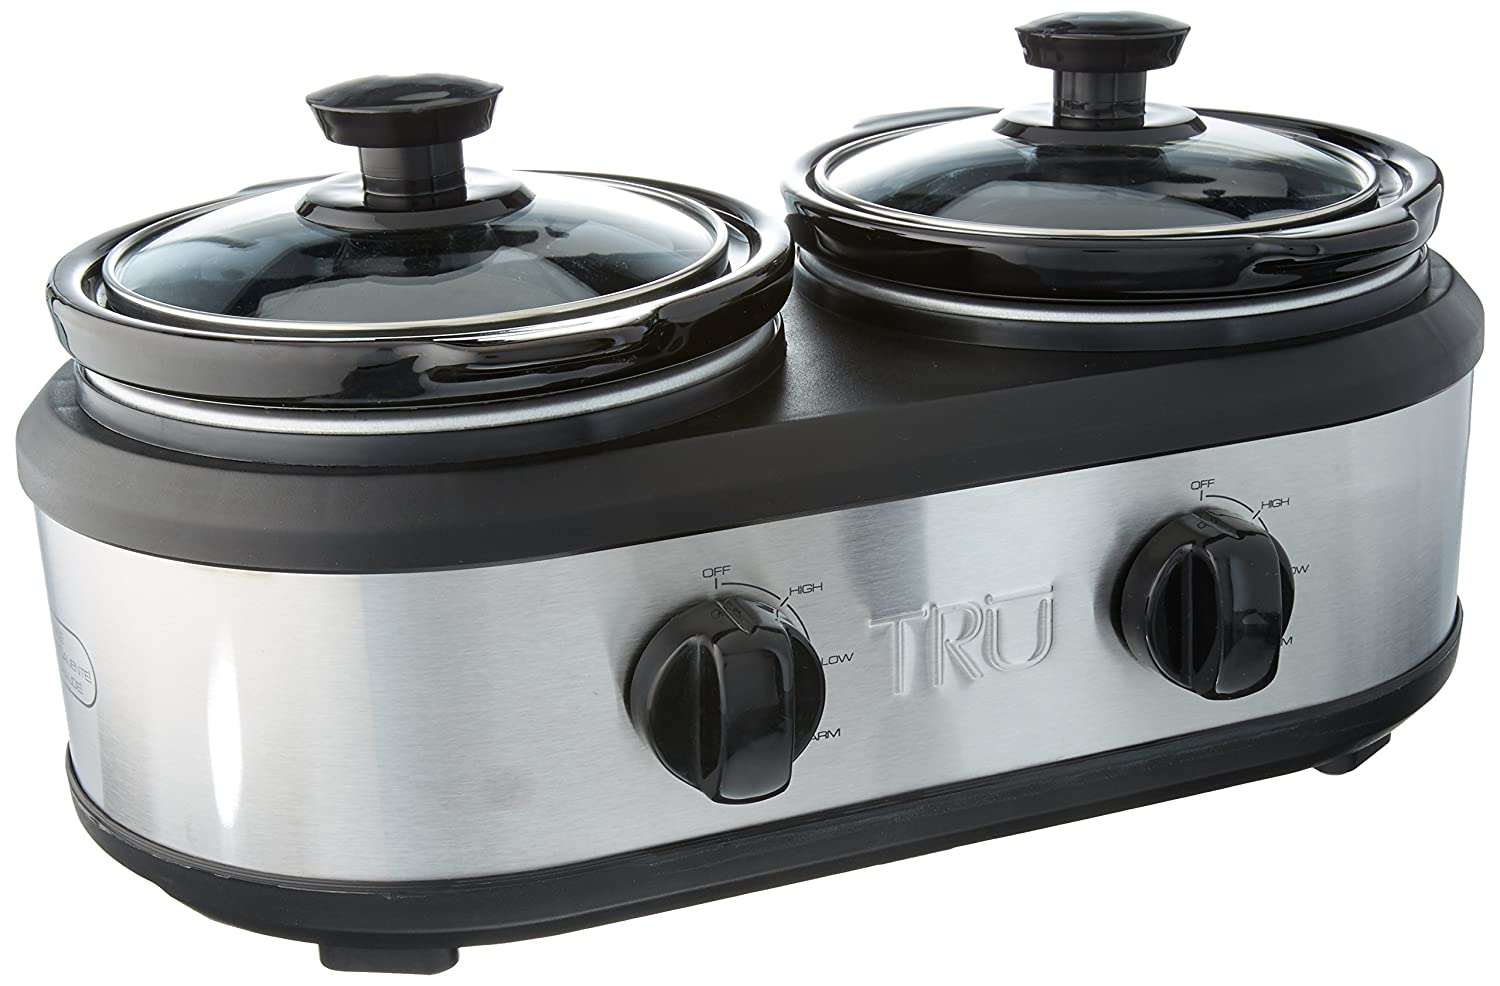 Amazon.com: TRU Dual Crock Buffet Slow Cooker SC-2125: Kitchen & Dining